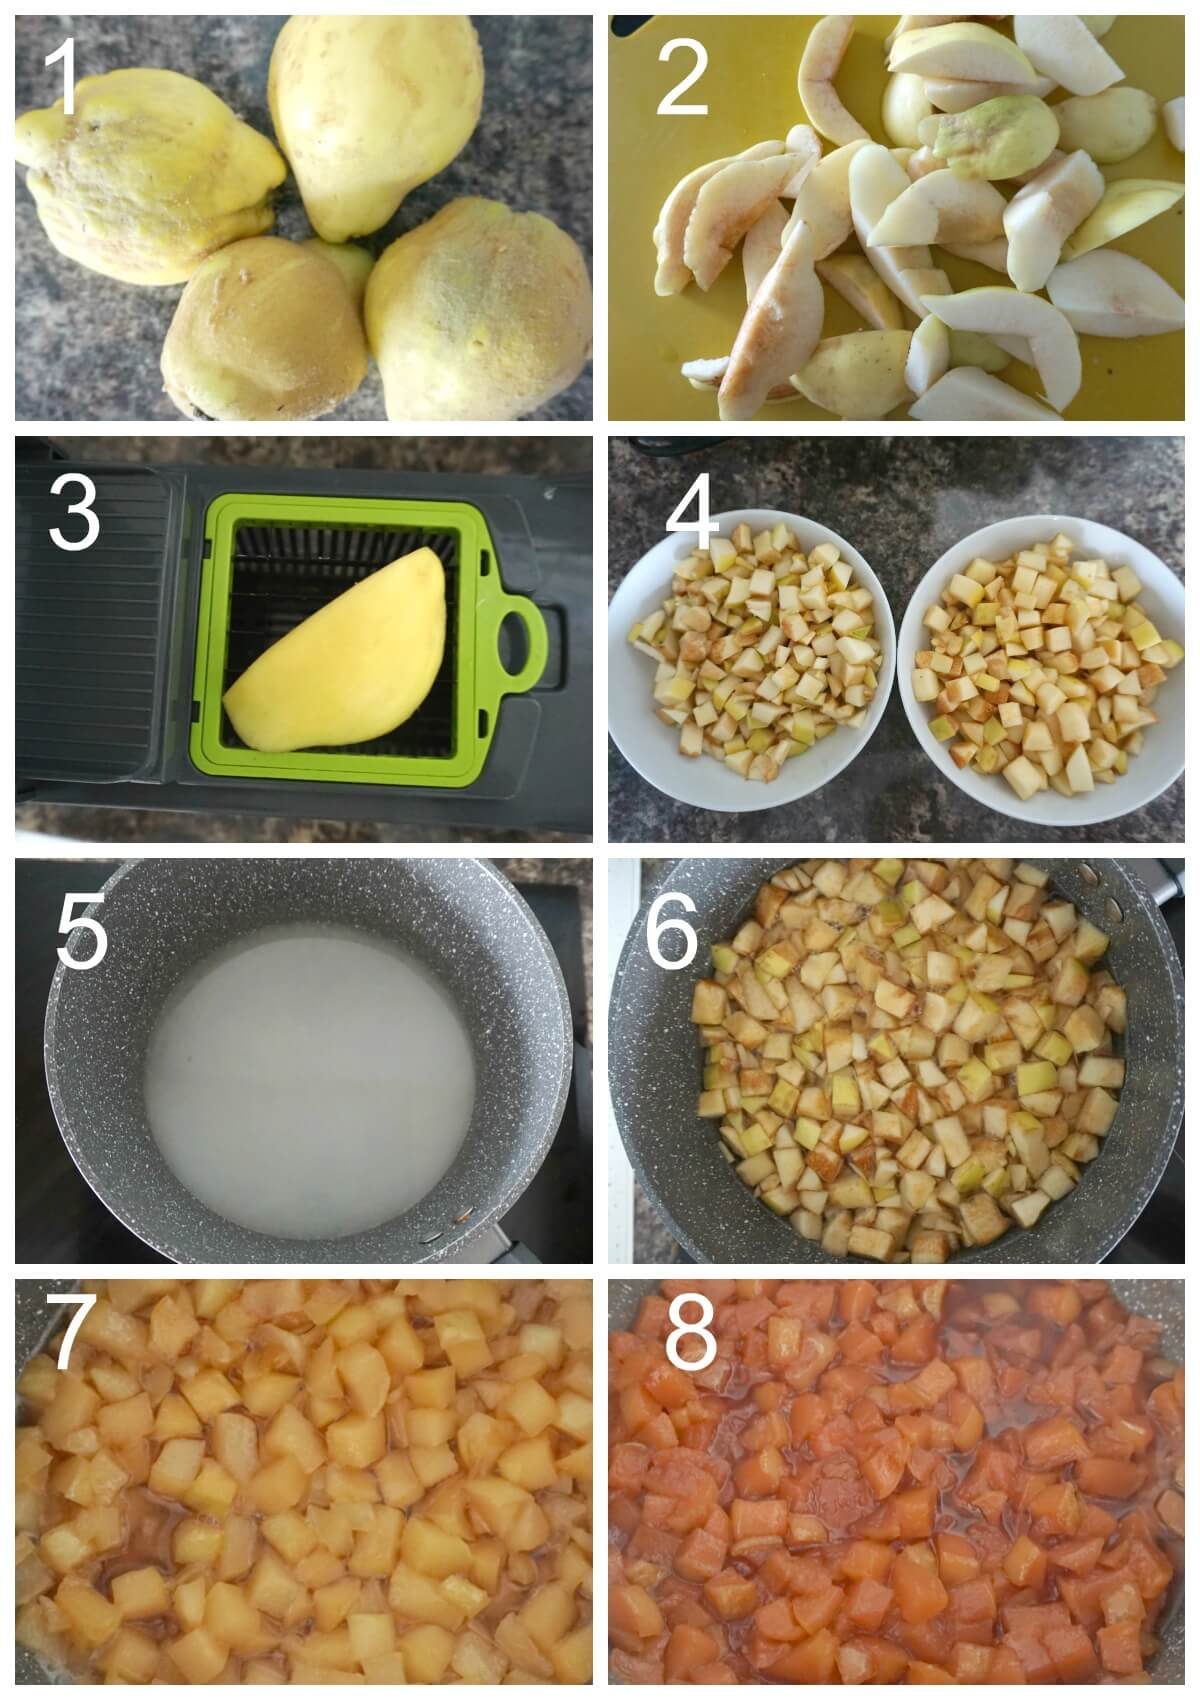 Collage of 8 photos to show how to make quince jam